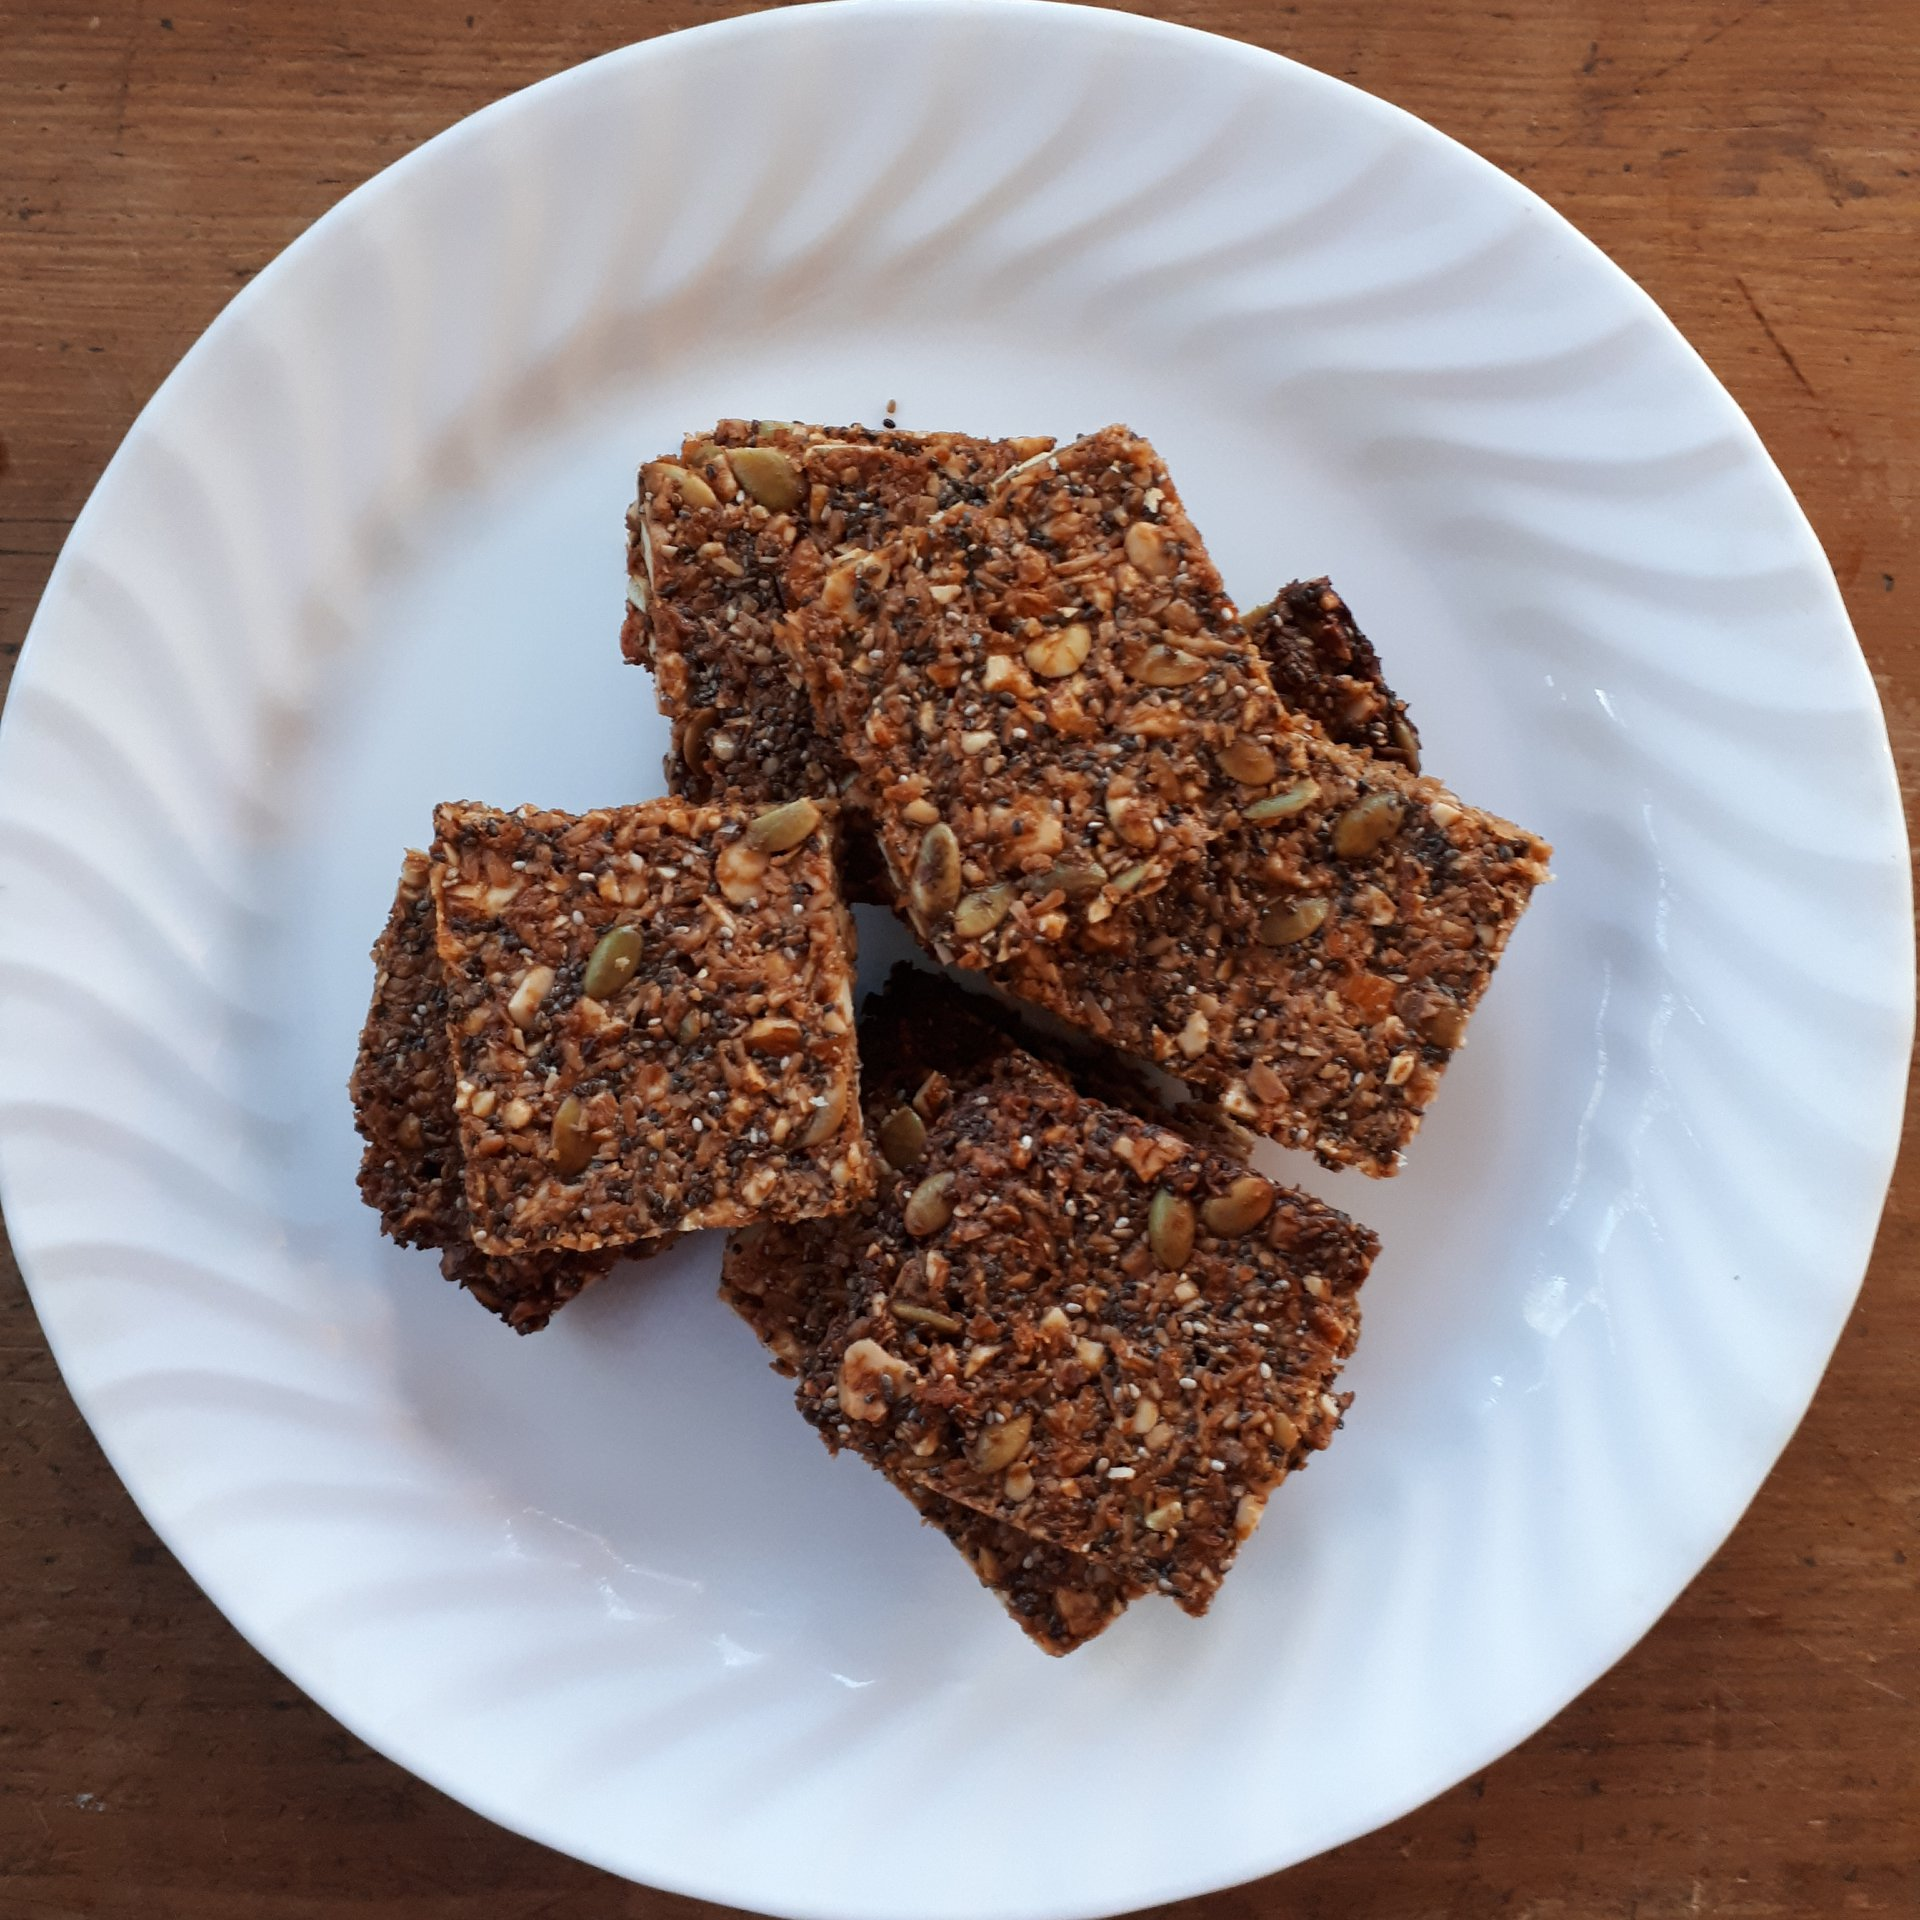 Coco-Nutty Snack Bars